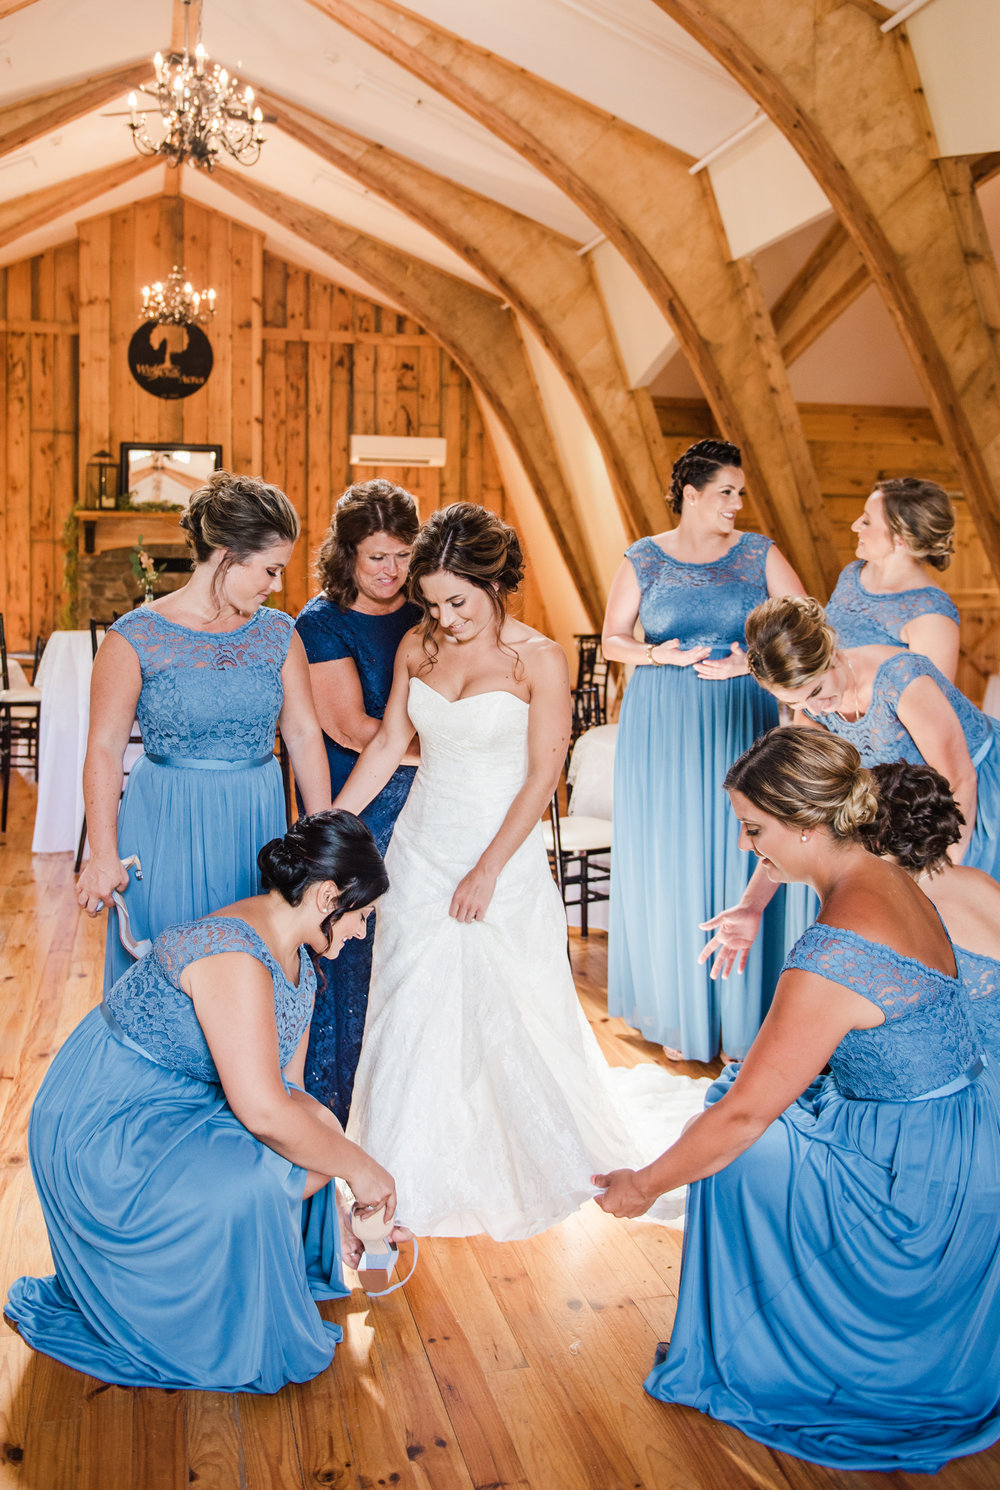 Wolf_Oak_Acres_Central_NY_Wedding_JILL_STUDIO_Rochester_NY_Photographer_DSC_4926.jpg